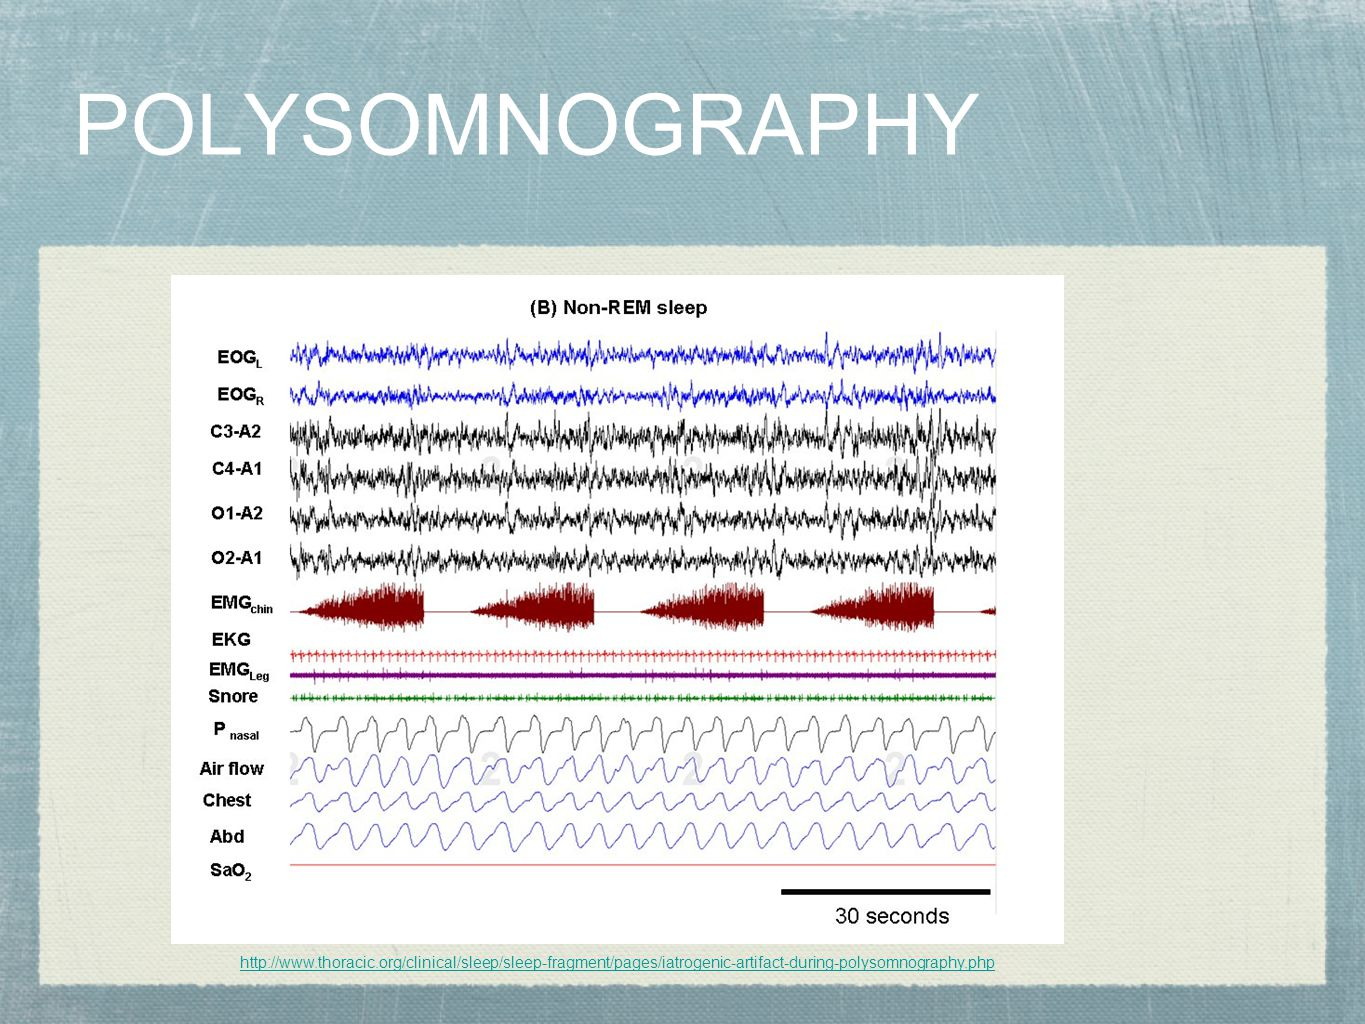 POLYSOMNOGRAPHY http://www.thoracic.org/clinical/sleep/sleep-fragment/pages/iatrogenic-artifact-during-polysomnography.php.